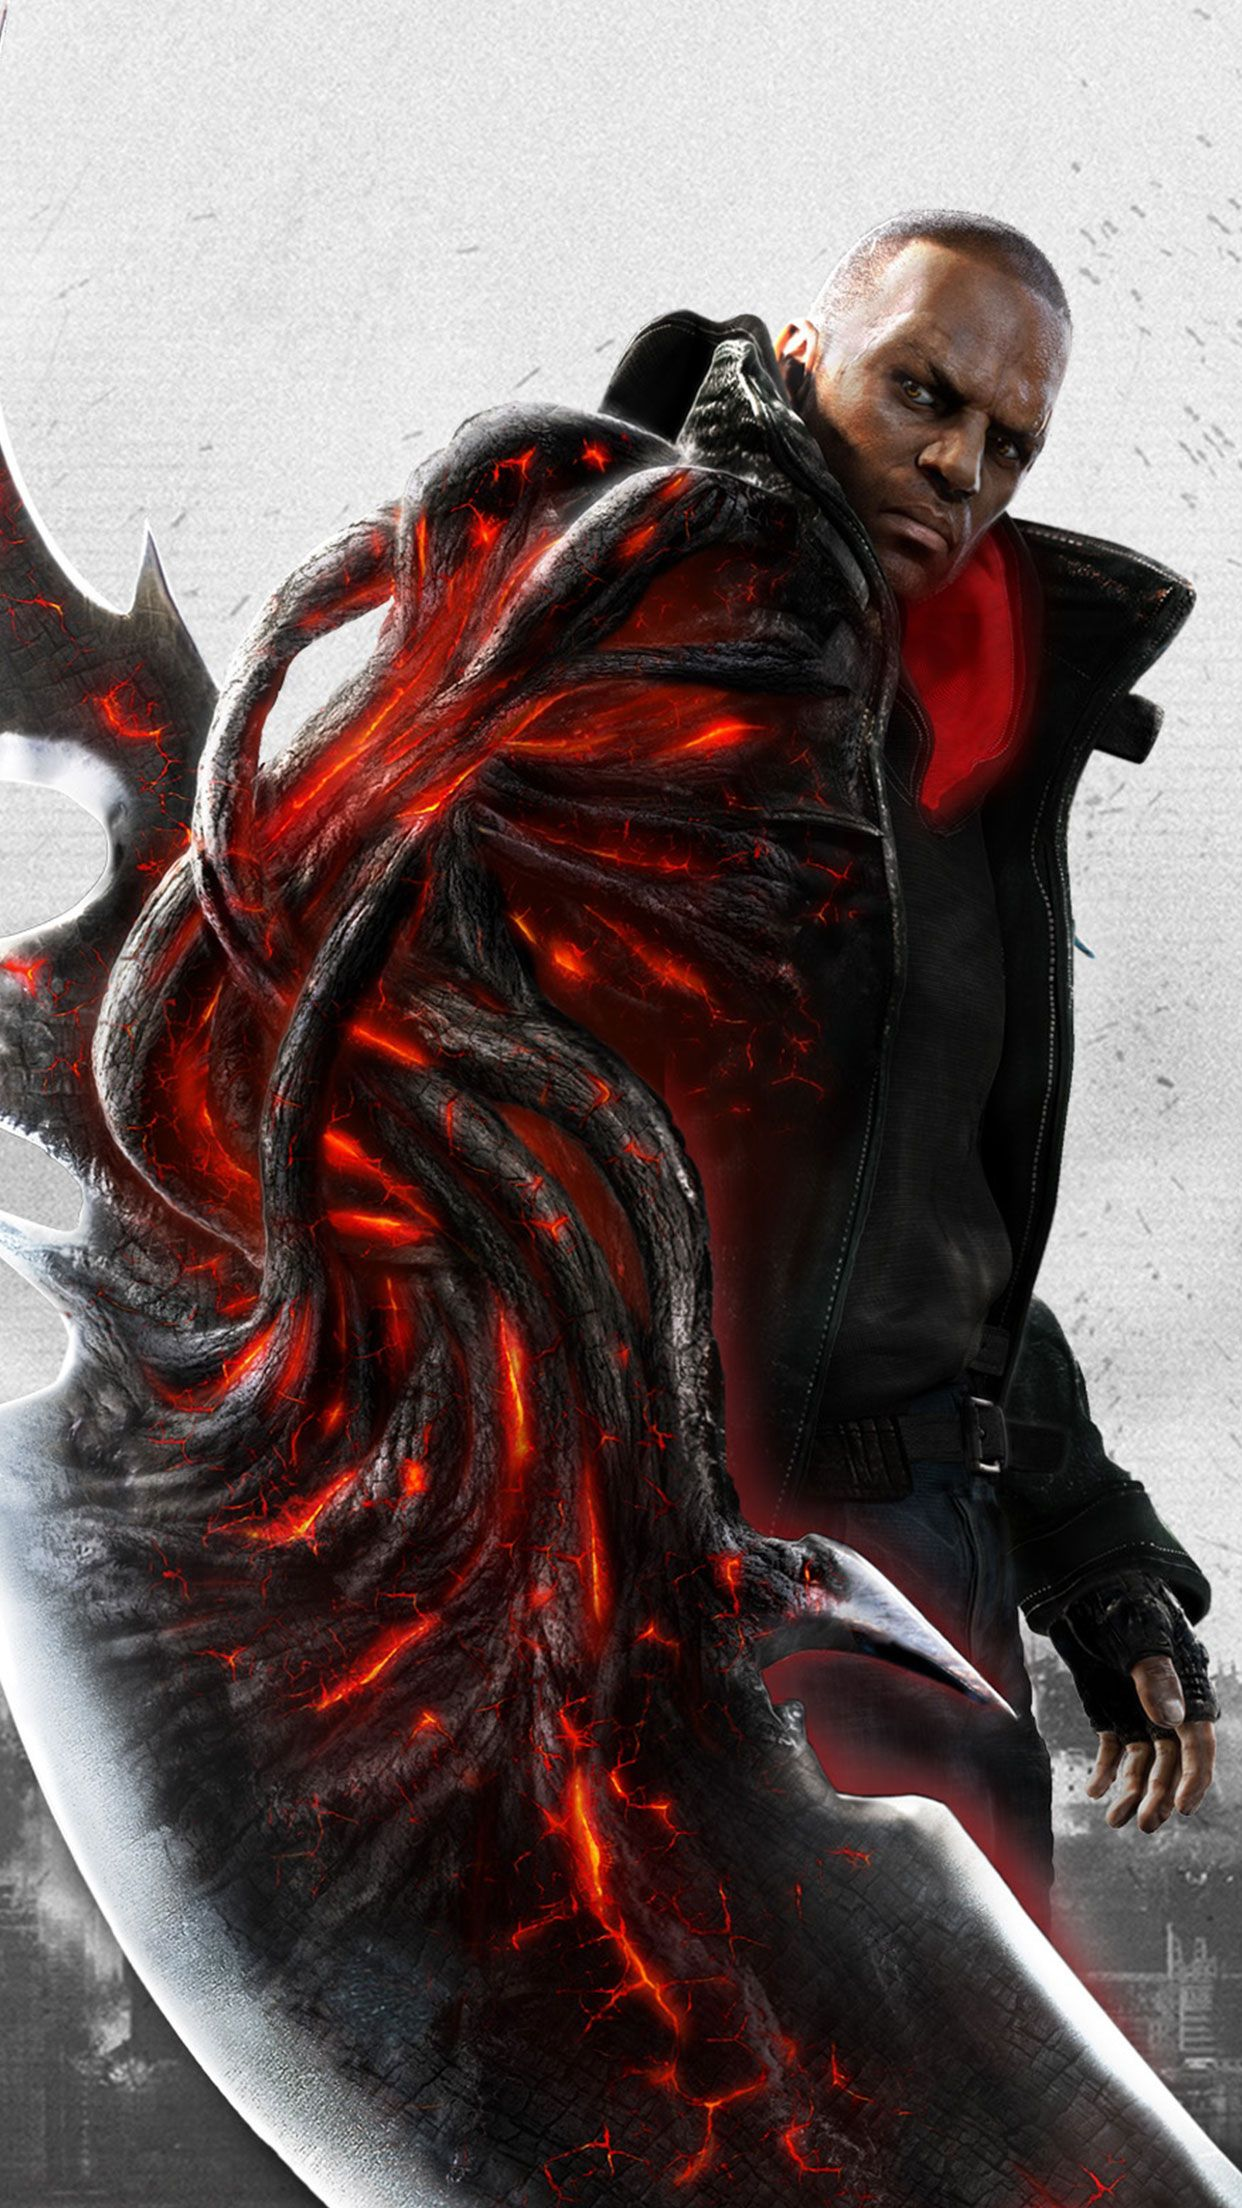 prototype 2 game wallpaper for #iphone #android #prototype #game